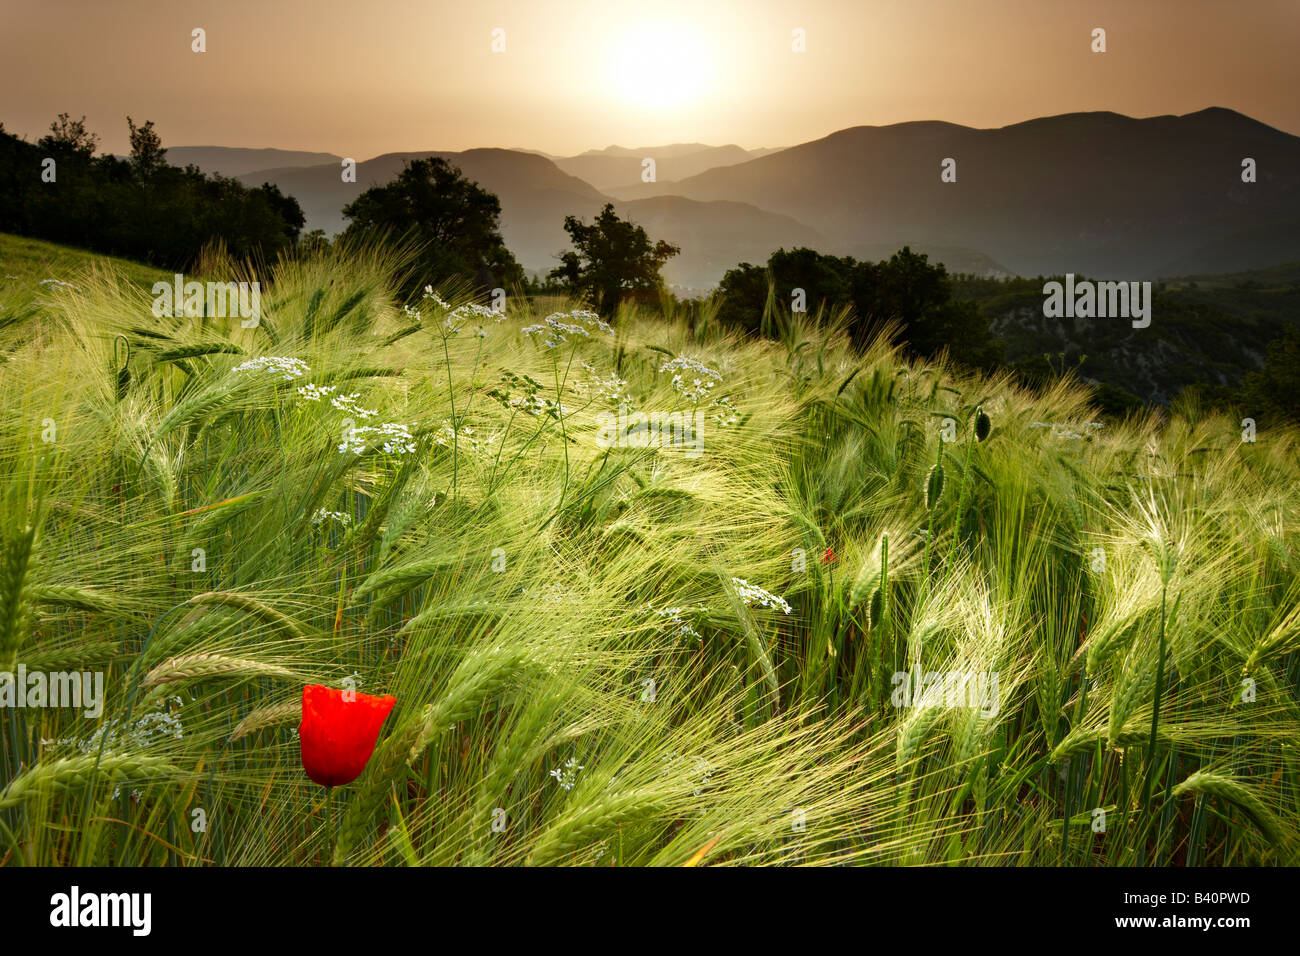 dawn in a barley field overlooking the Valnerina near Meggiano, Umbria, Italy Stock Photo